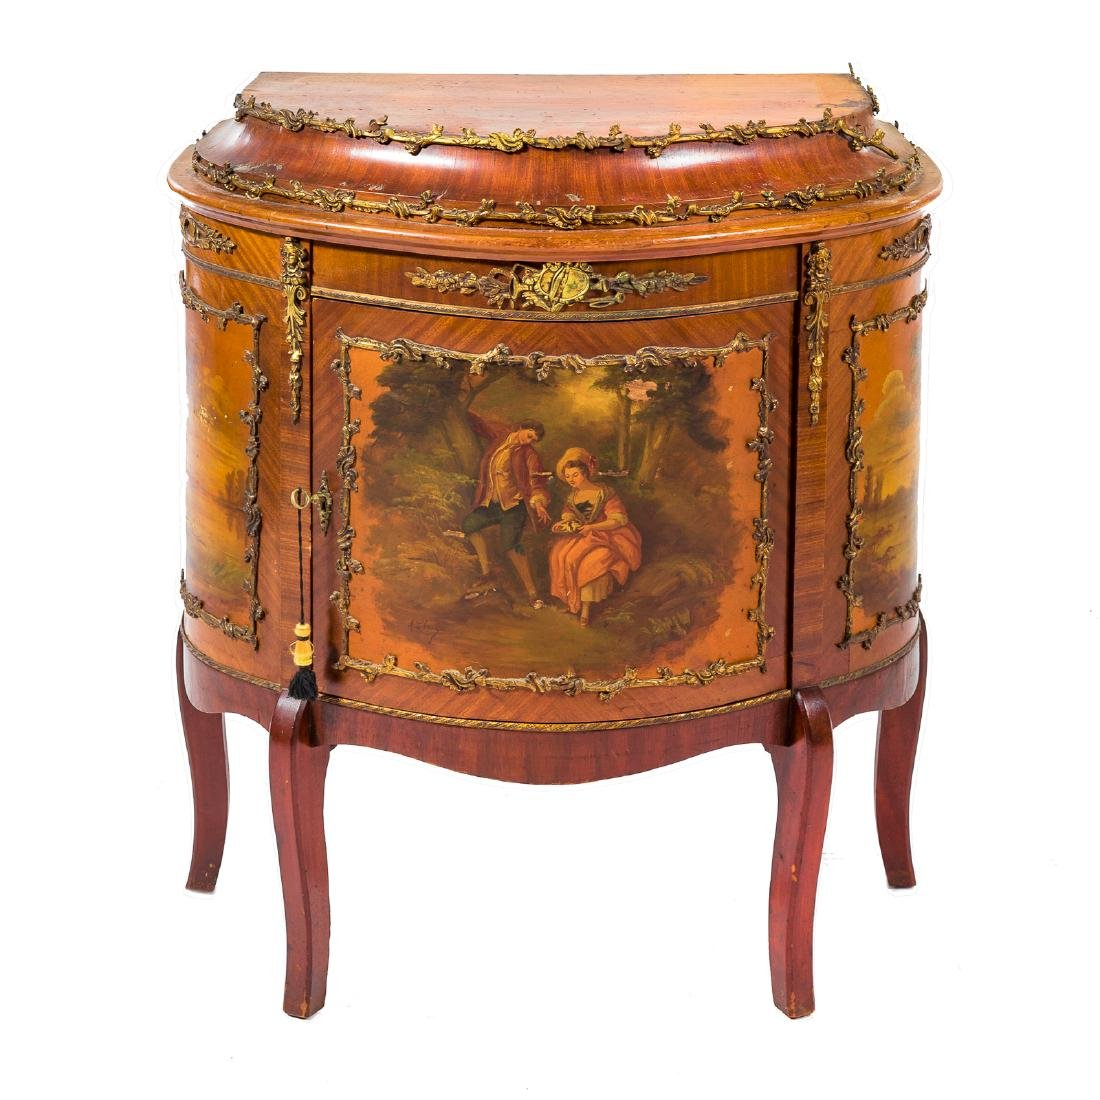 Louis XV style kingwood brass-mounted commode